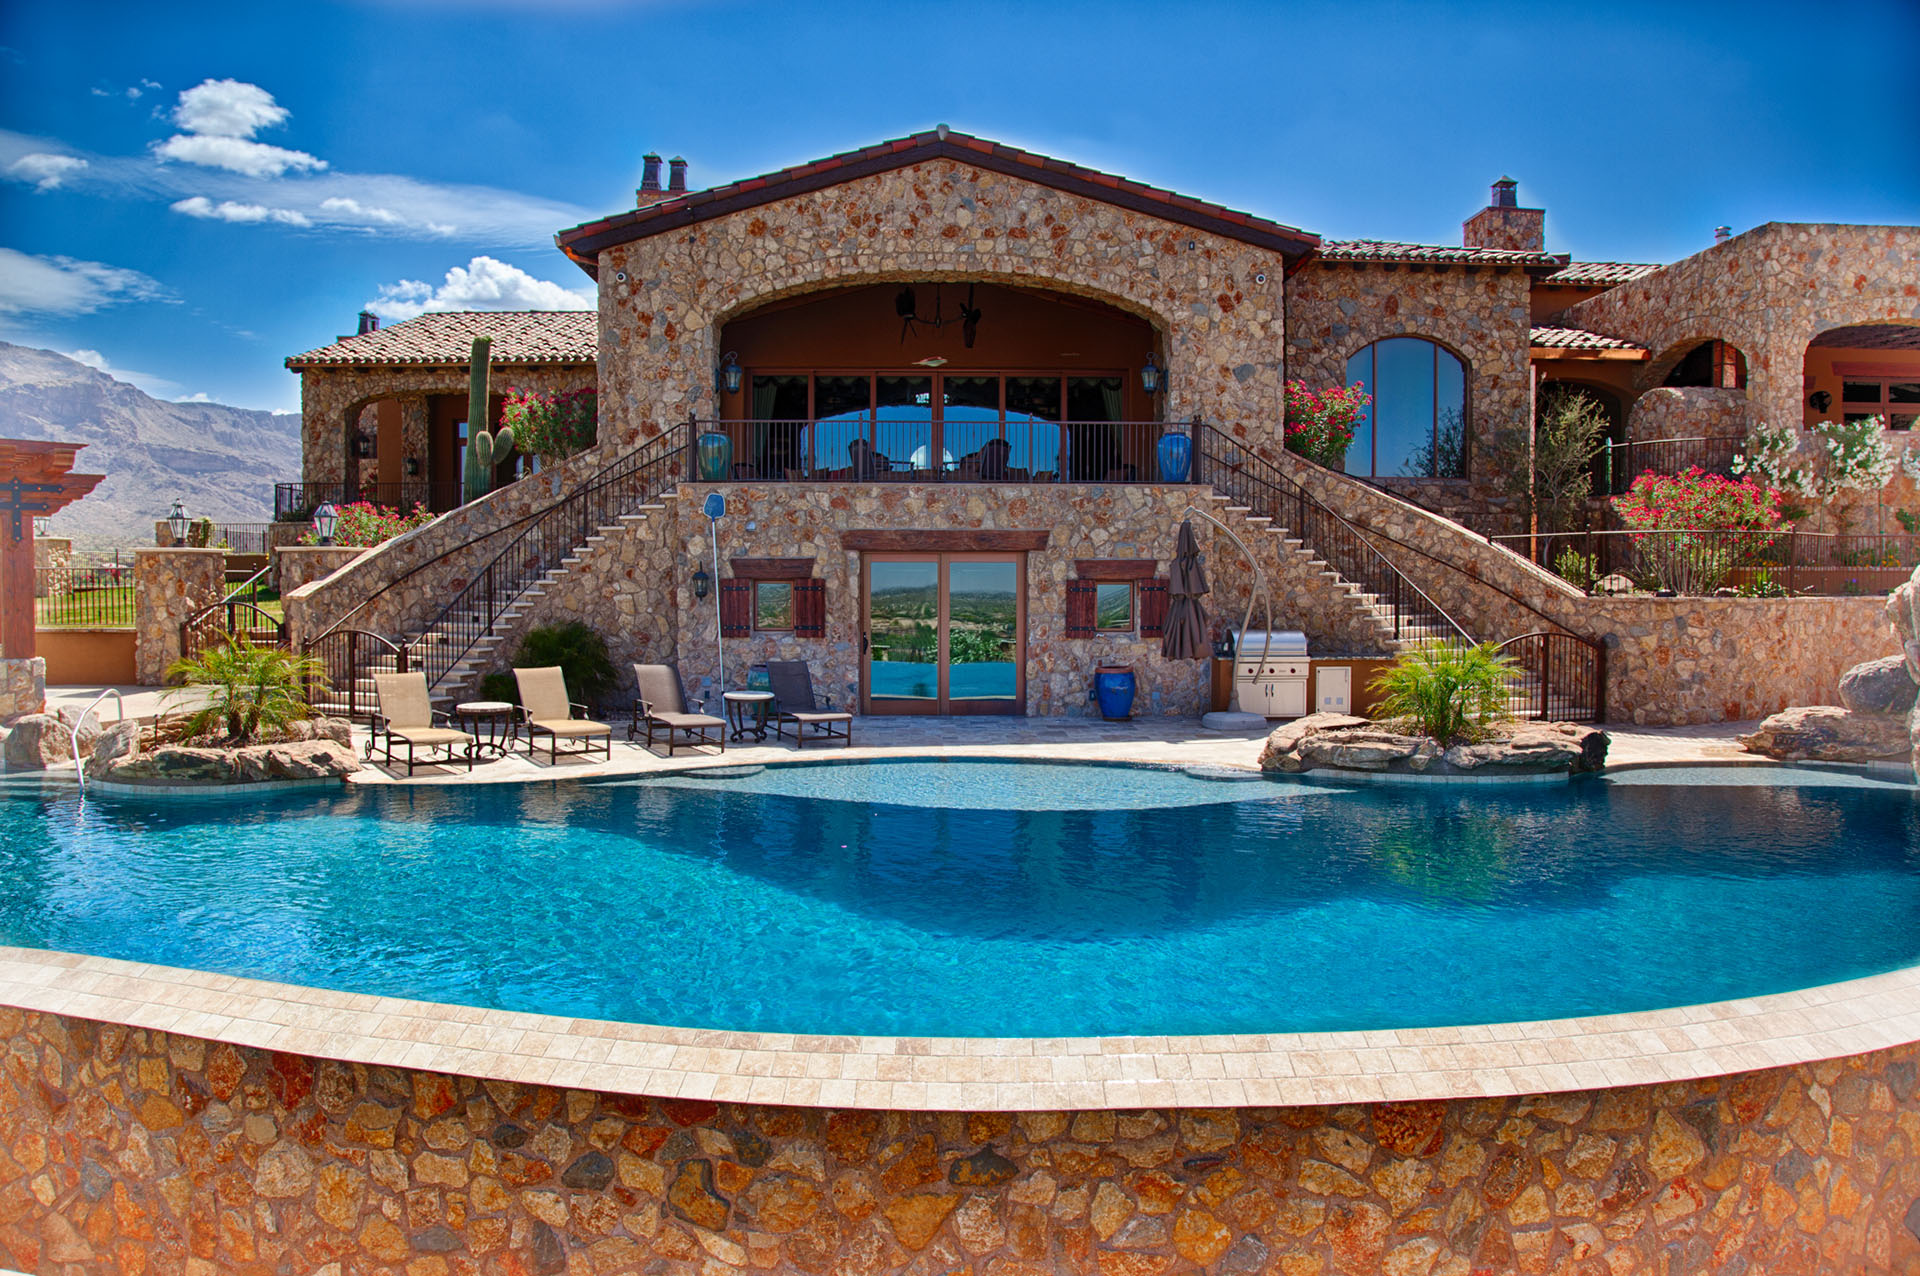 Add Value To Your Home With A Custom Pool